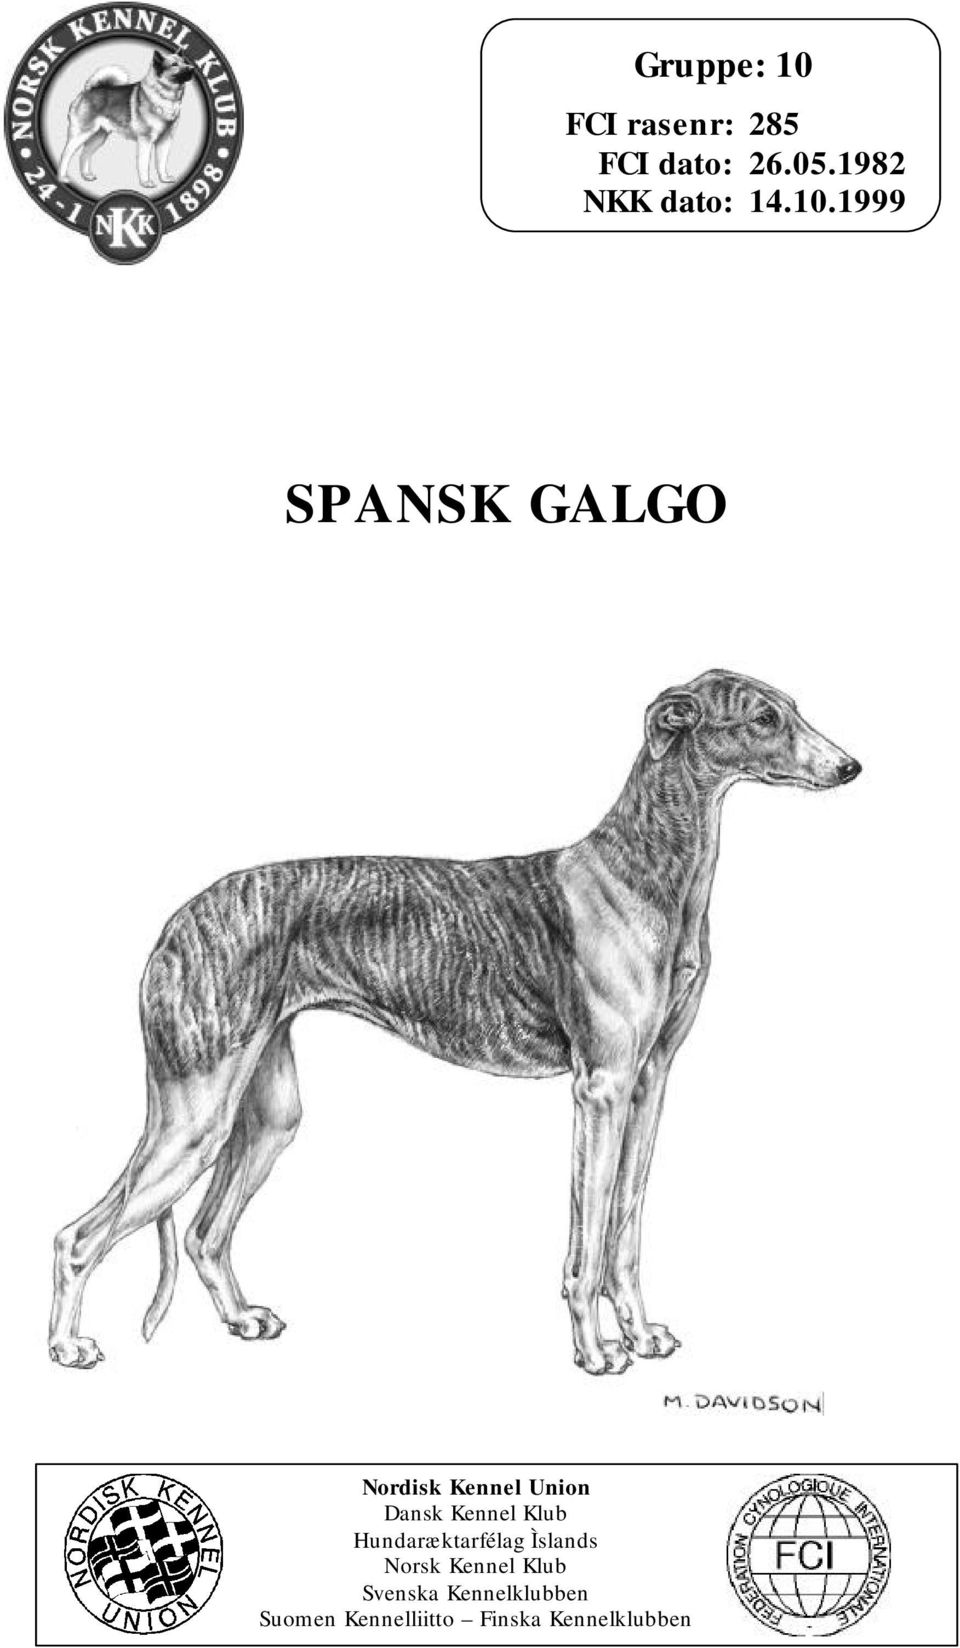 1999 SPANSK GALGO Nordisk Kennel Union Dansk Kennel Klub